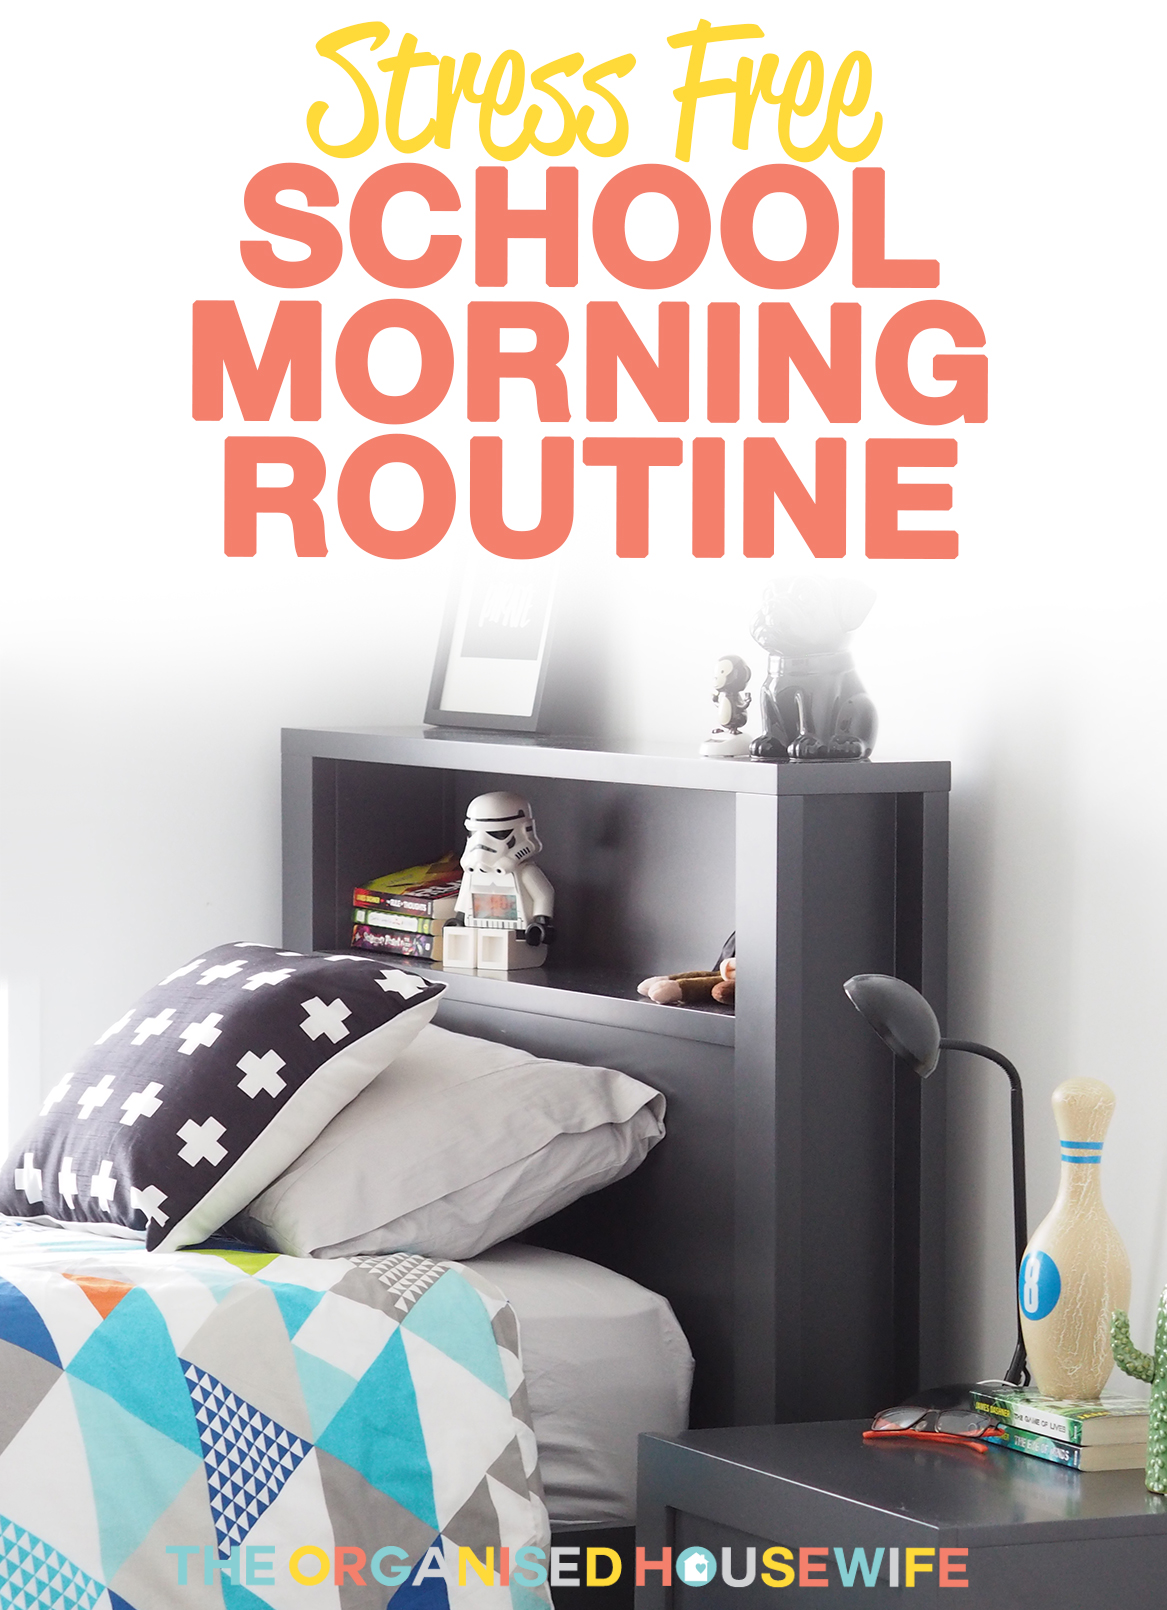 School mornings in our house have changed recently, for the better. I have worked out a strategy with the kids to make the morning not so rushed and hectic, a stress free school morning routine. It's all in the planning and preparation over the weekend and the night before.